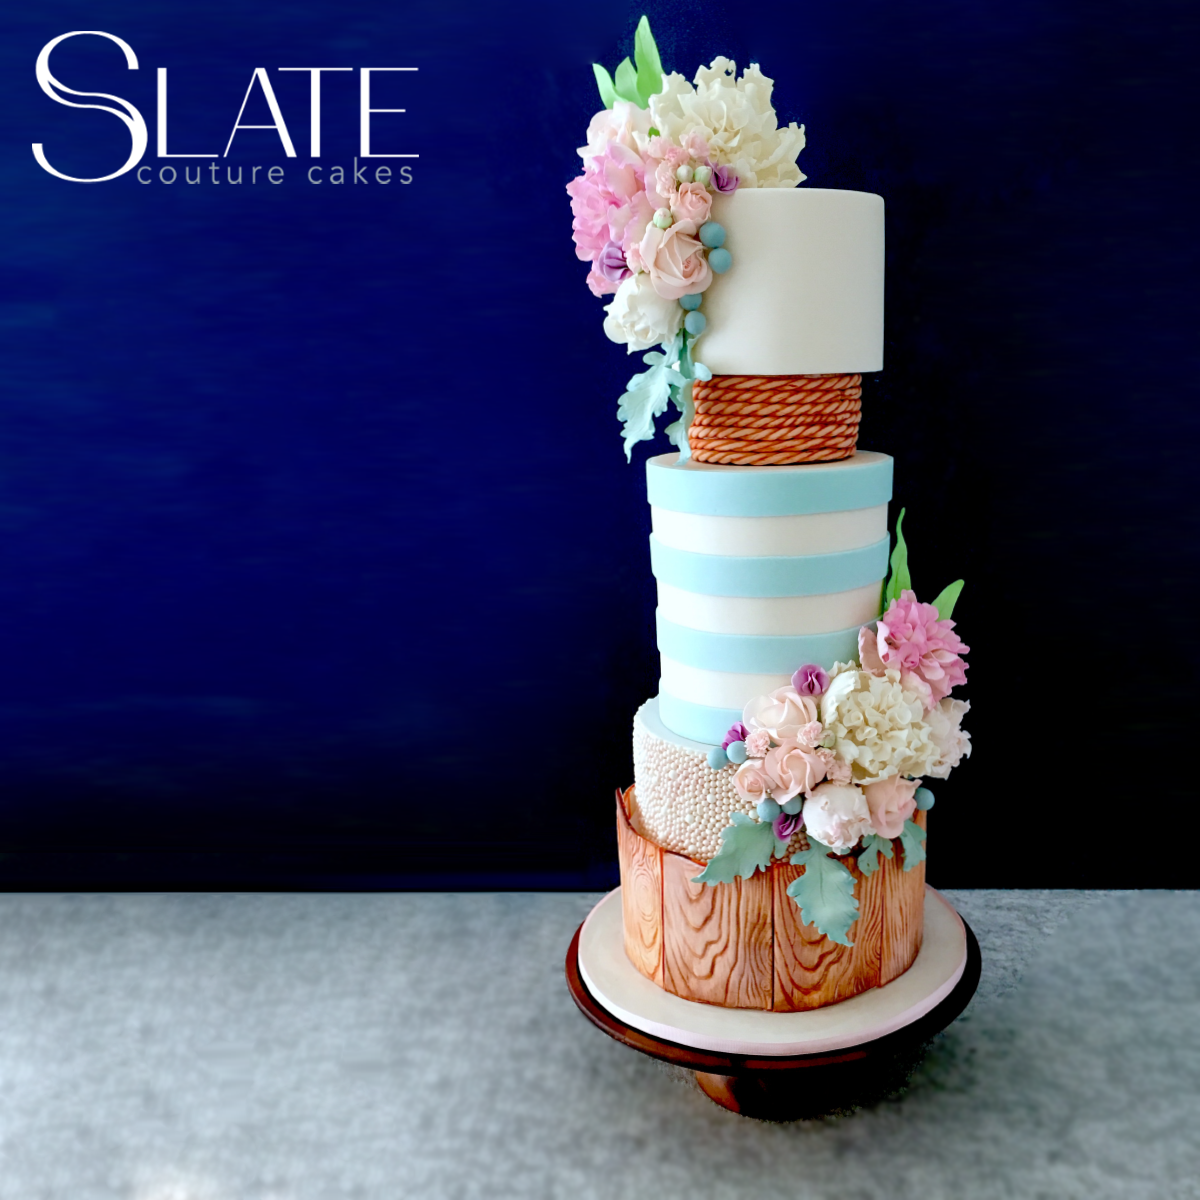 Light blue and white striped nautical themed wedding cake